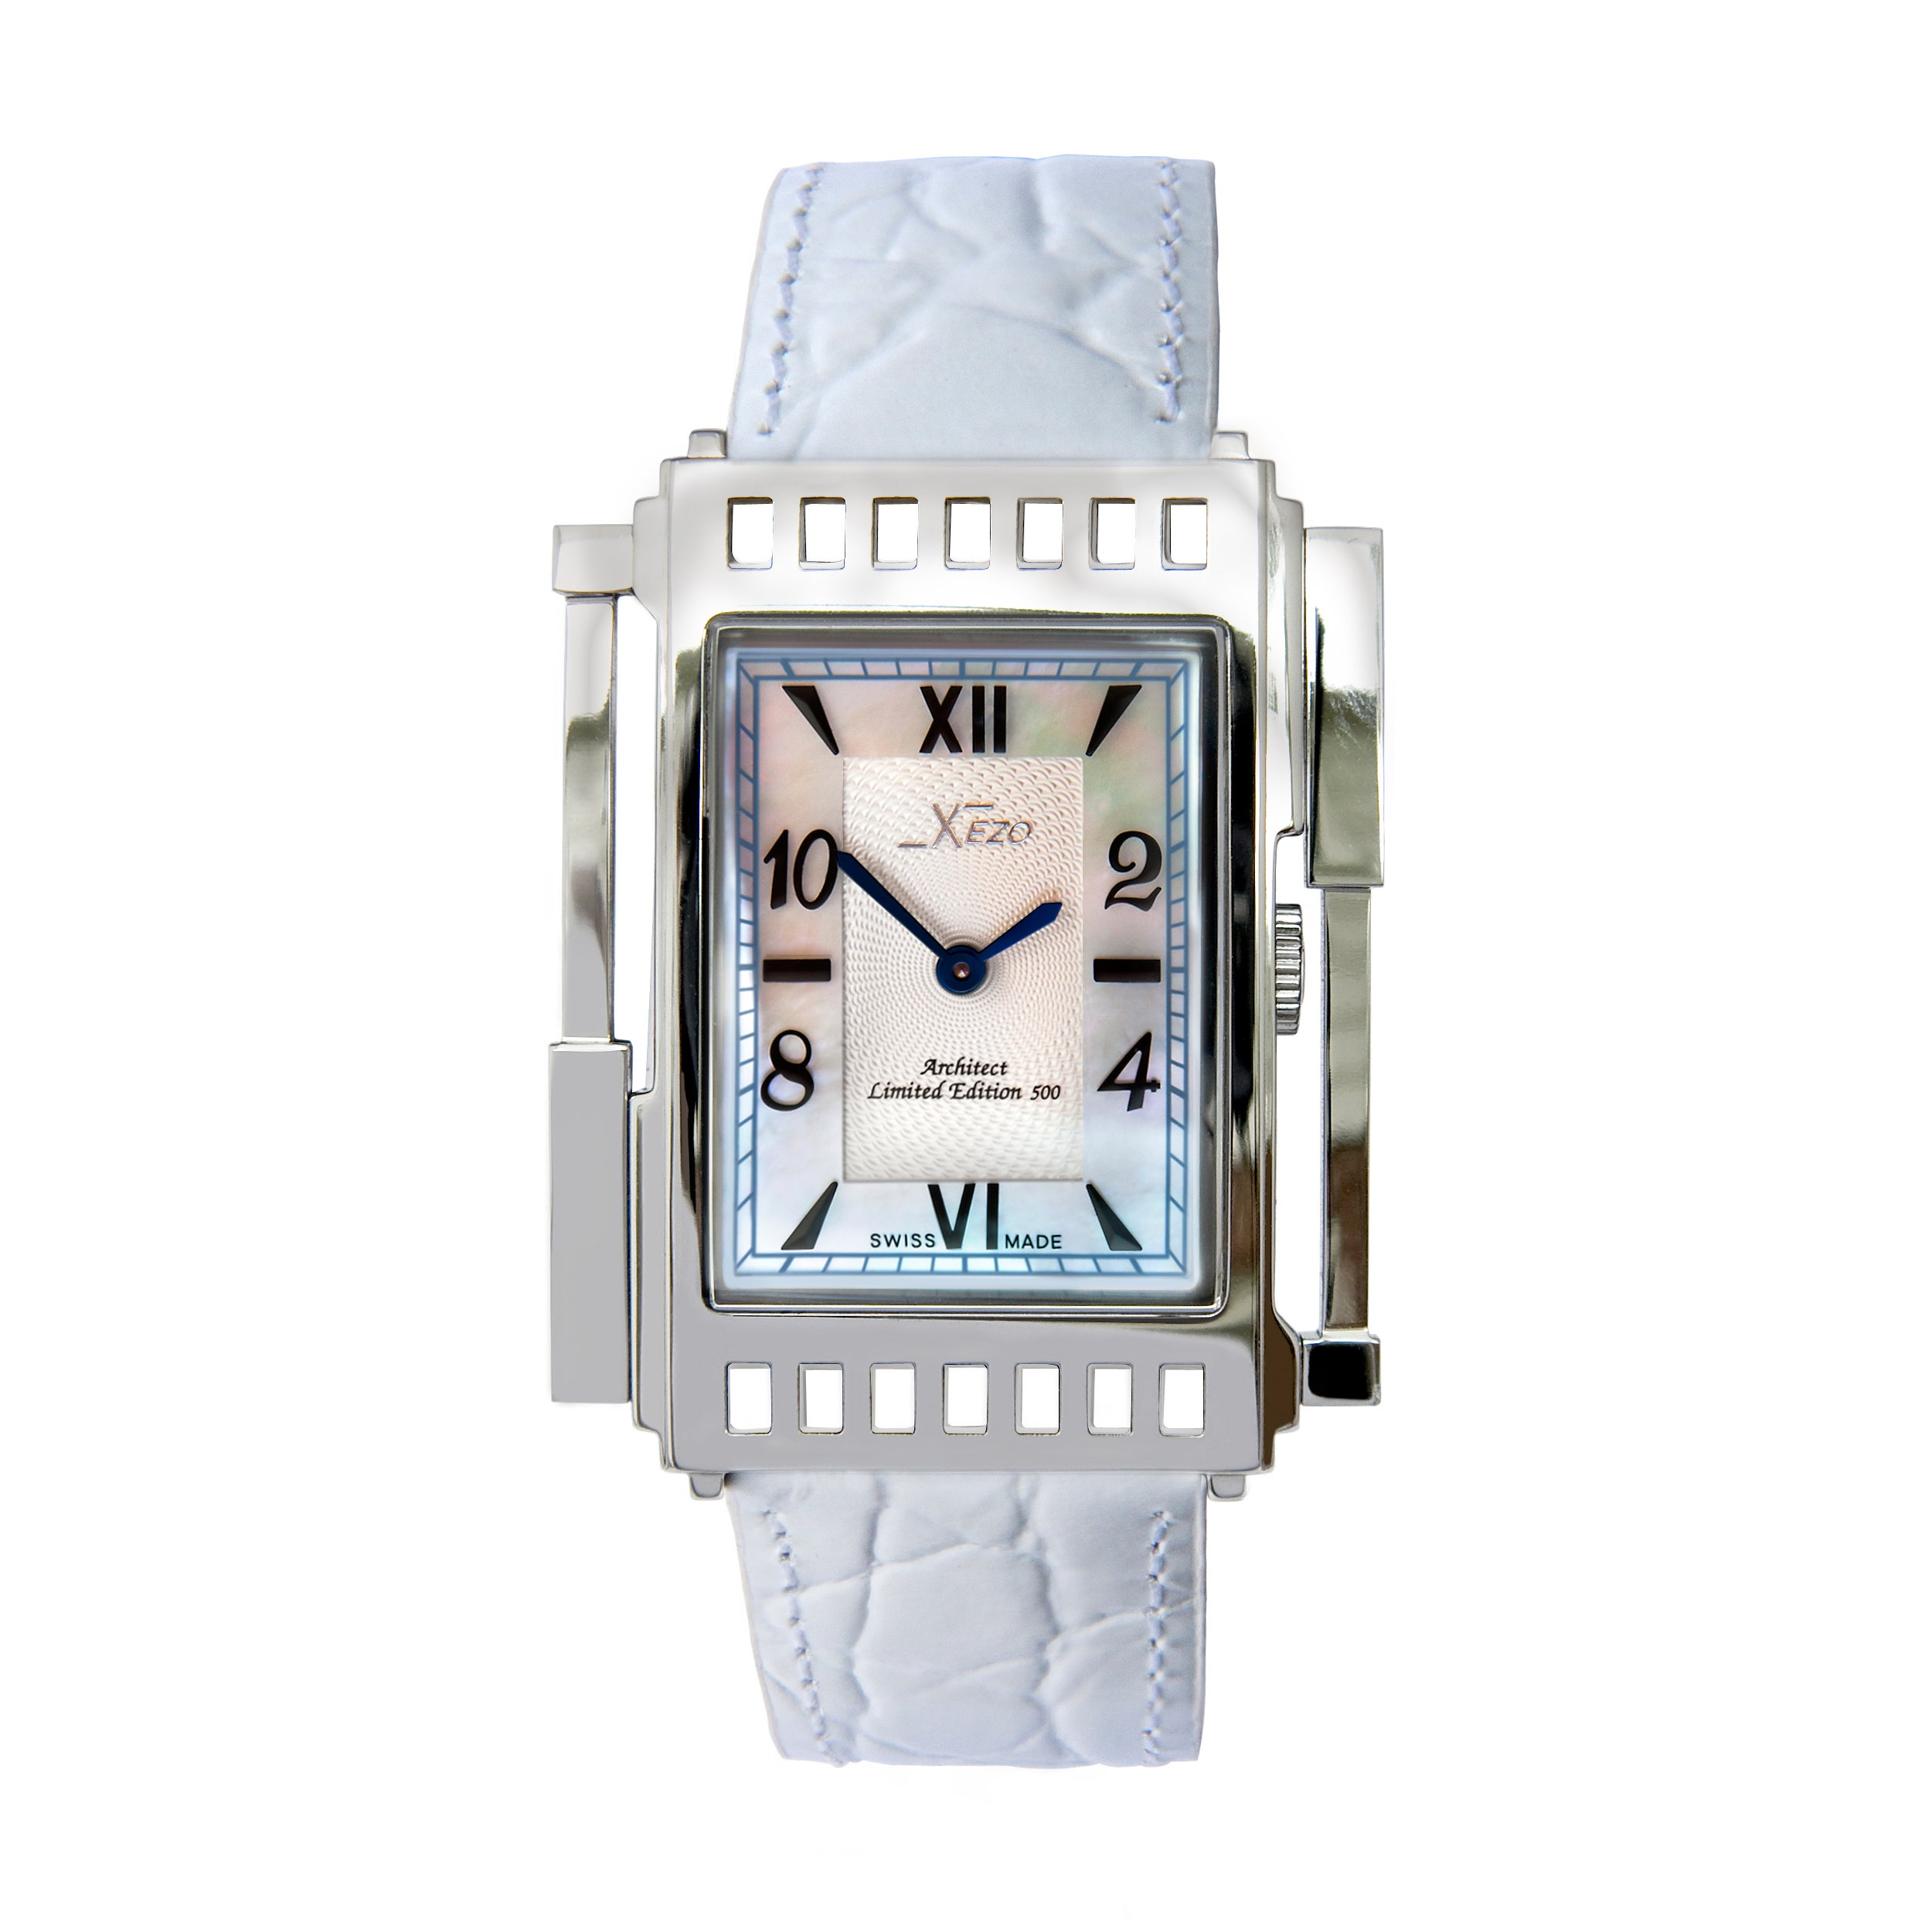 Xezo women 39 s architect 2001 limited edition watch free shipping today 14648393 for Xezo watches